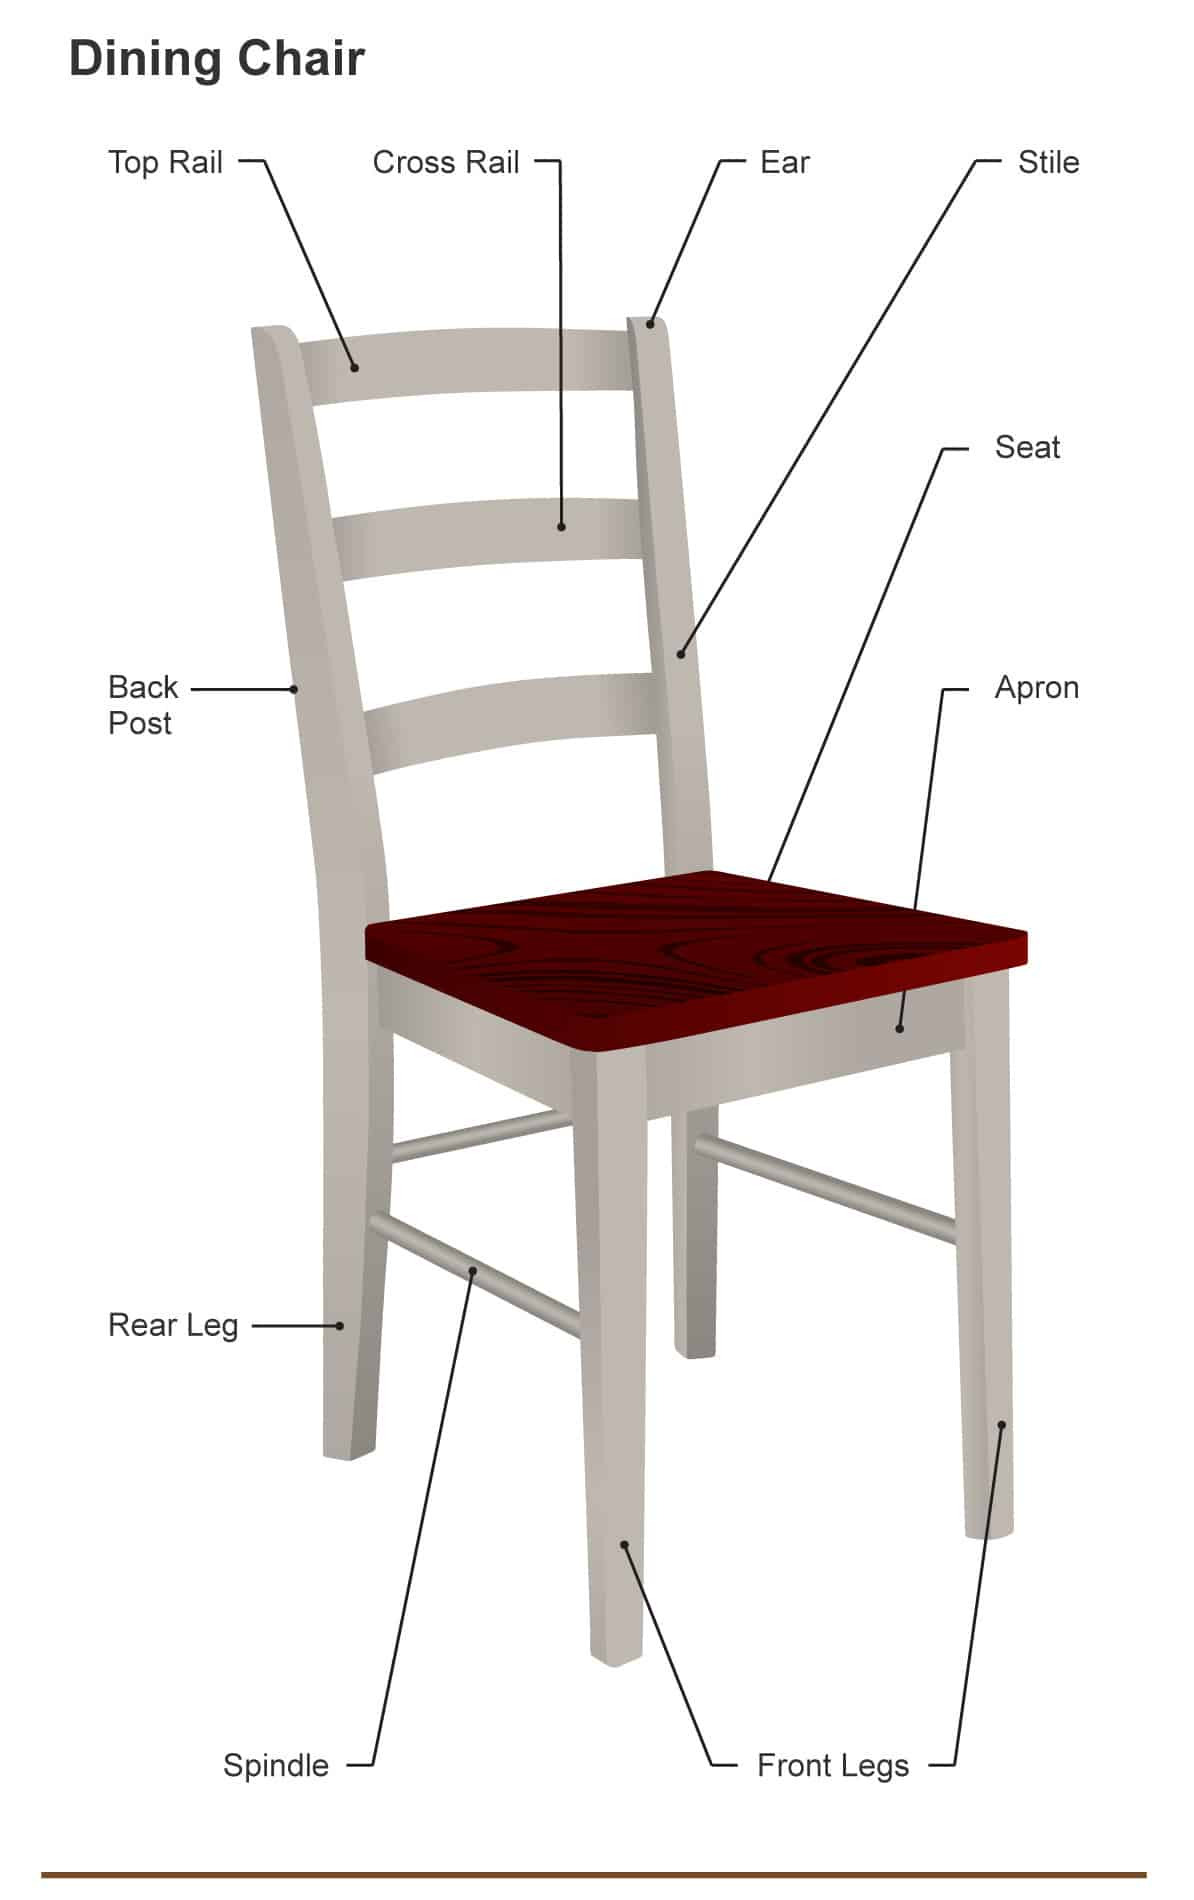 parts of dining chair